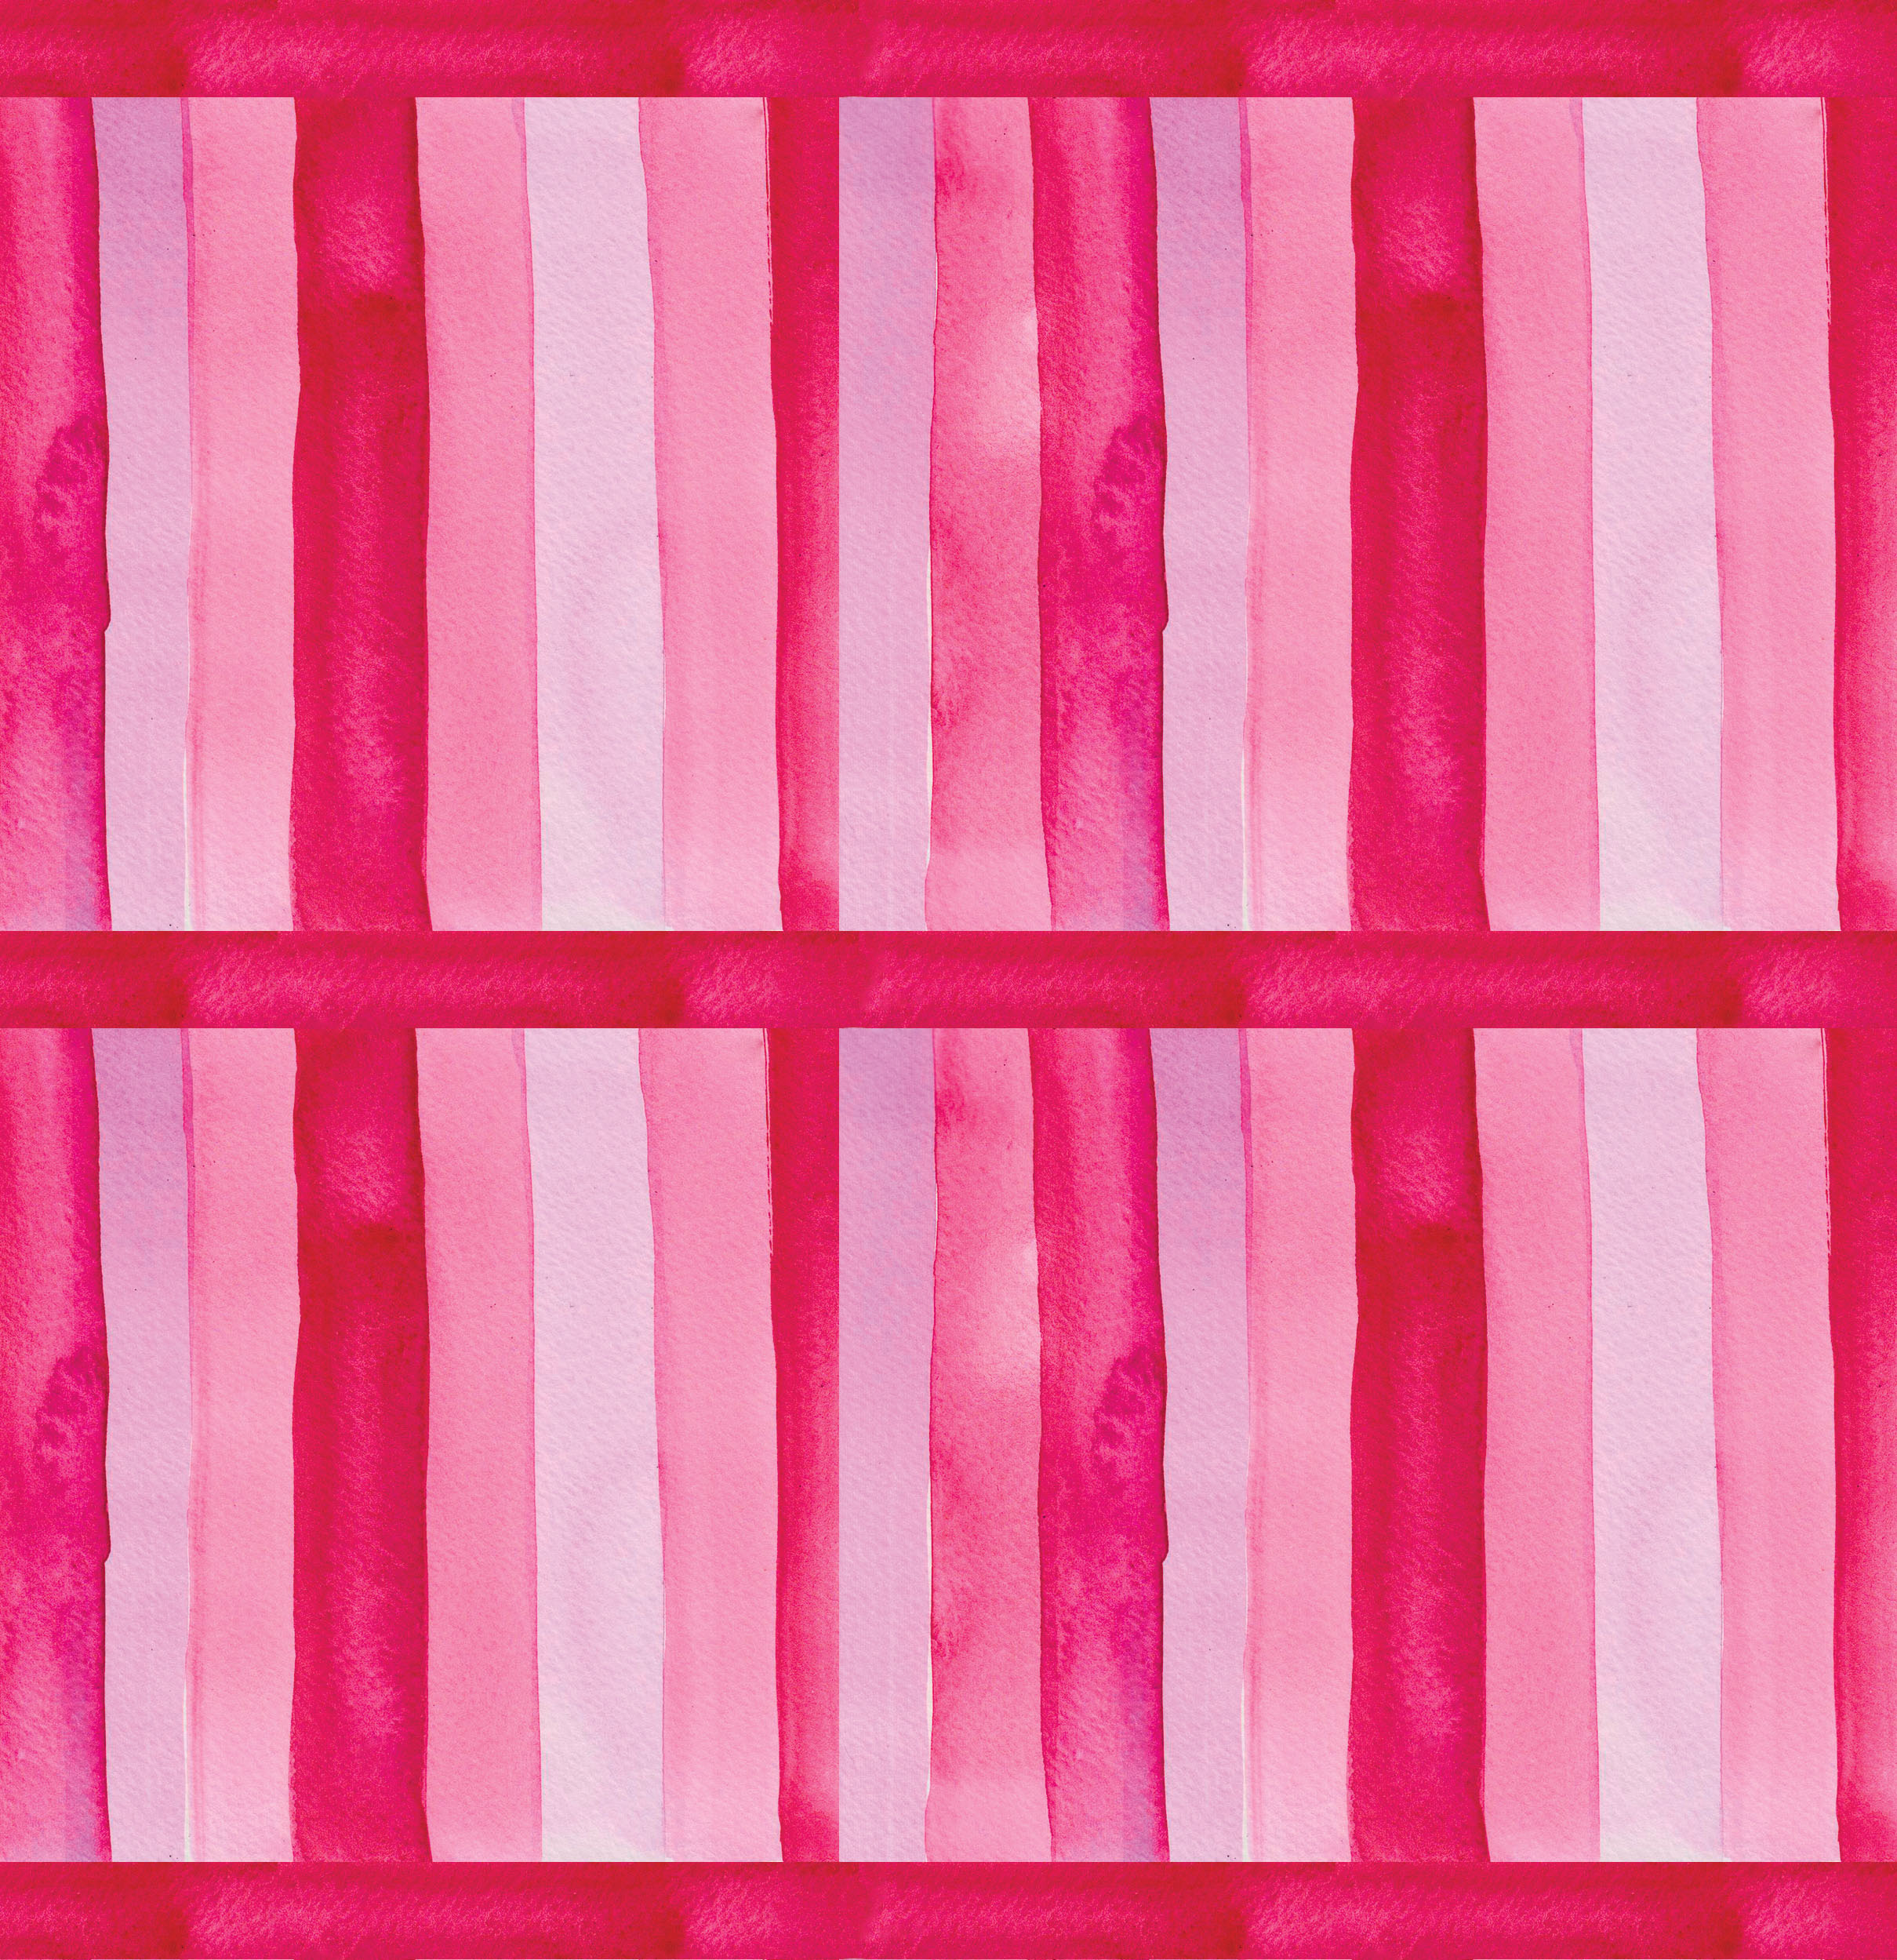 Pink Stripes Pattern Tiled